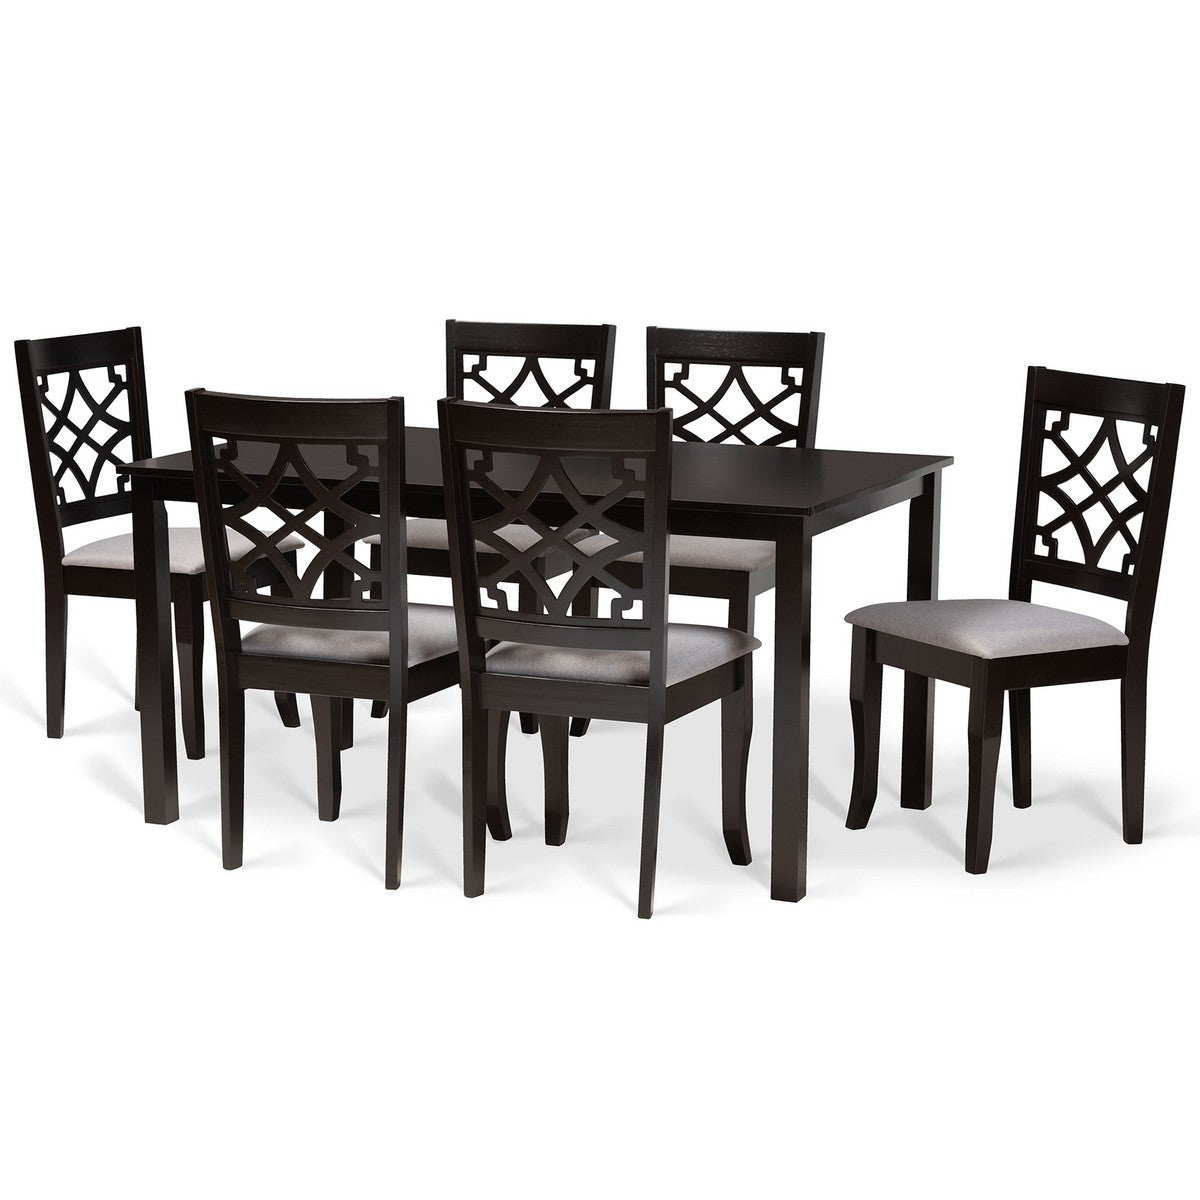 Baxton Studio Mael Modern and Contemporary Grey Fabric Upholstered and Dark Brown Finished Wood 7-Piece Dining Set Baxton Studio-Dining Sets-Minimal And Modern - 1